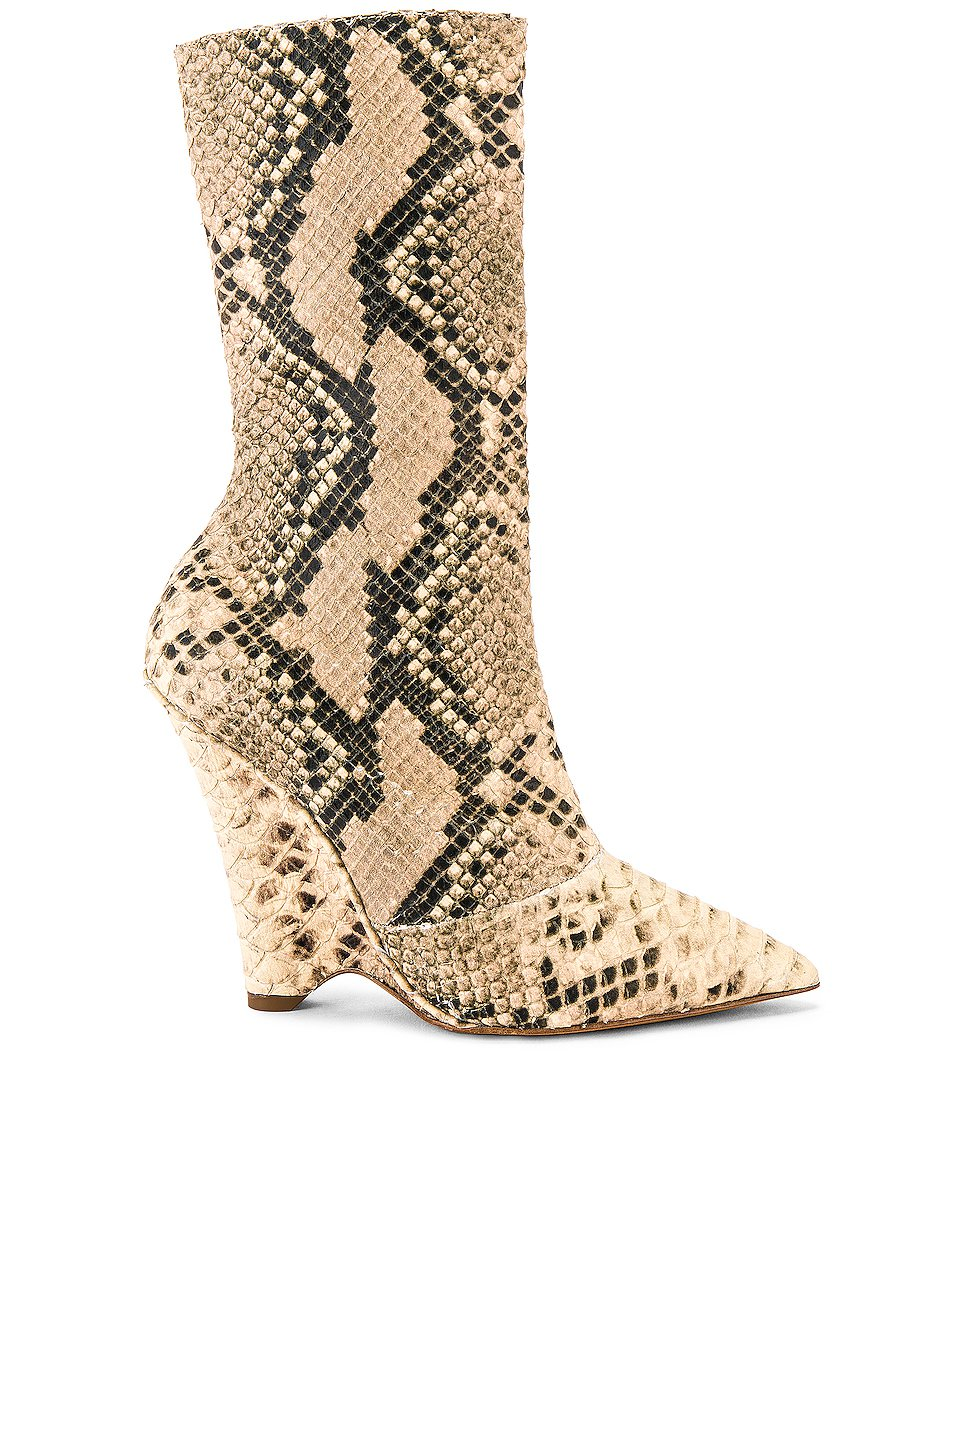 SEASON 8 Python Wedge Ankle Boot